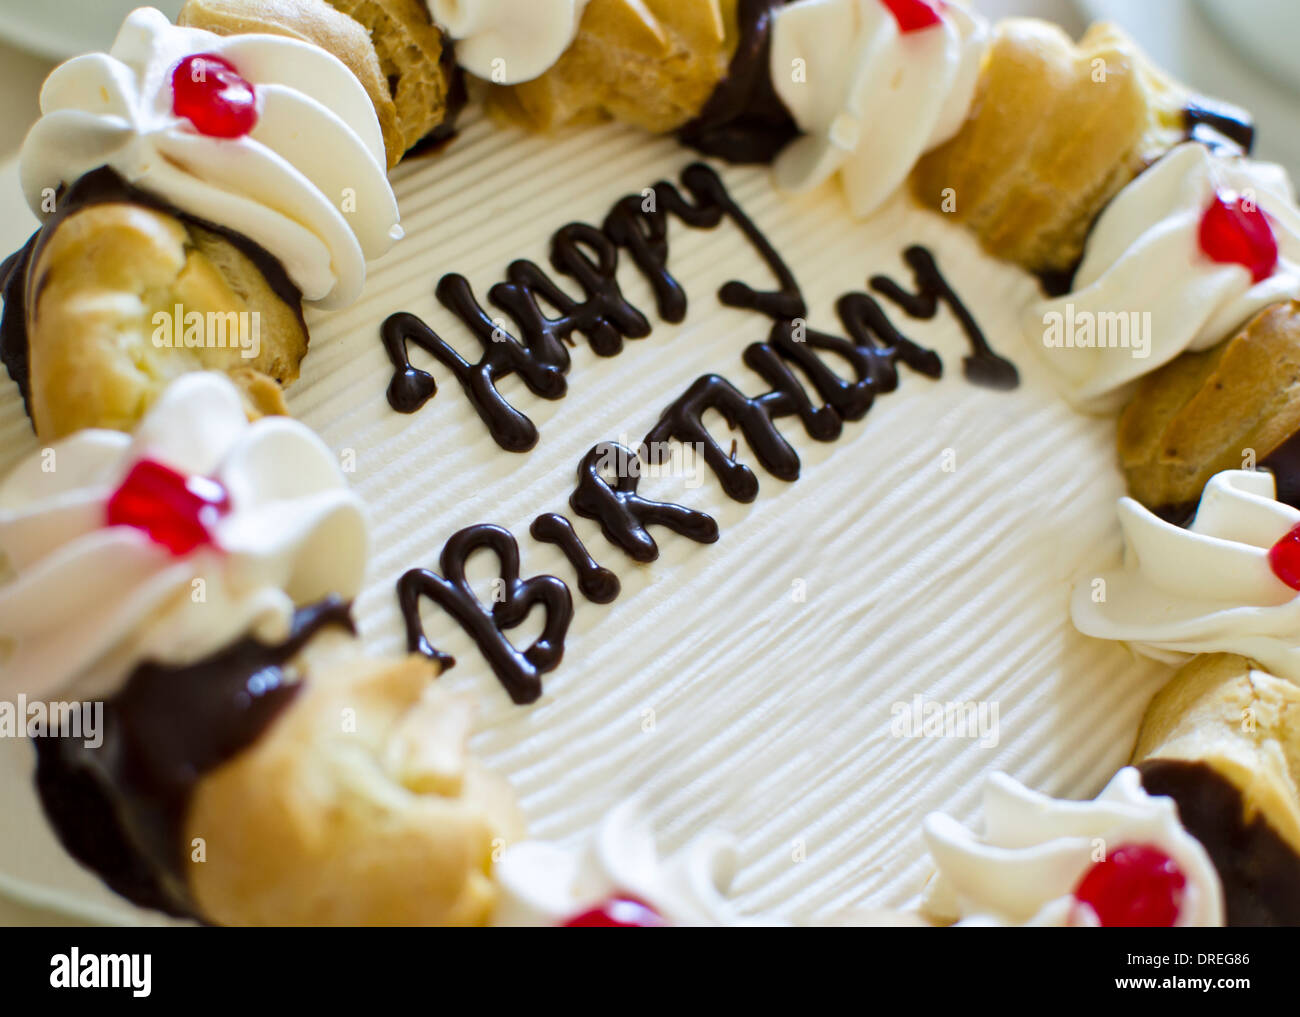 Awesome Fancy Birthday Cake With Pastries And Happy Birthday Written On Funny Birthday Cards Online Aboleapandamsfinfo